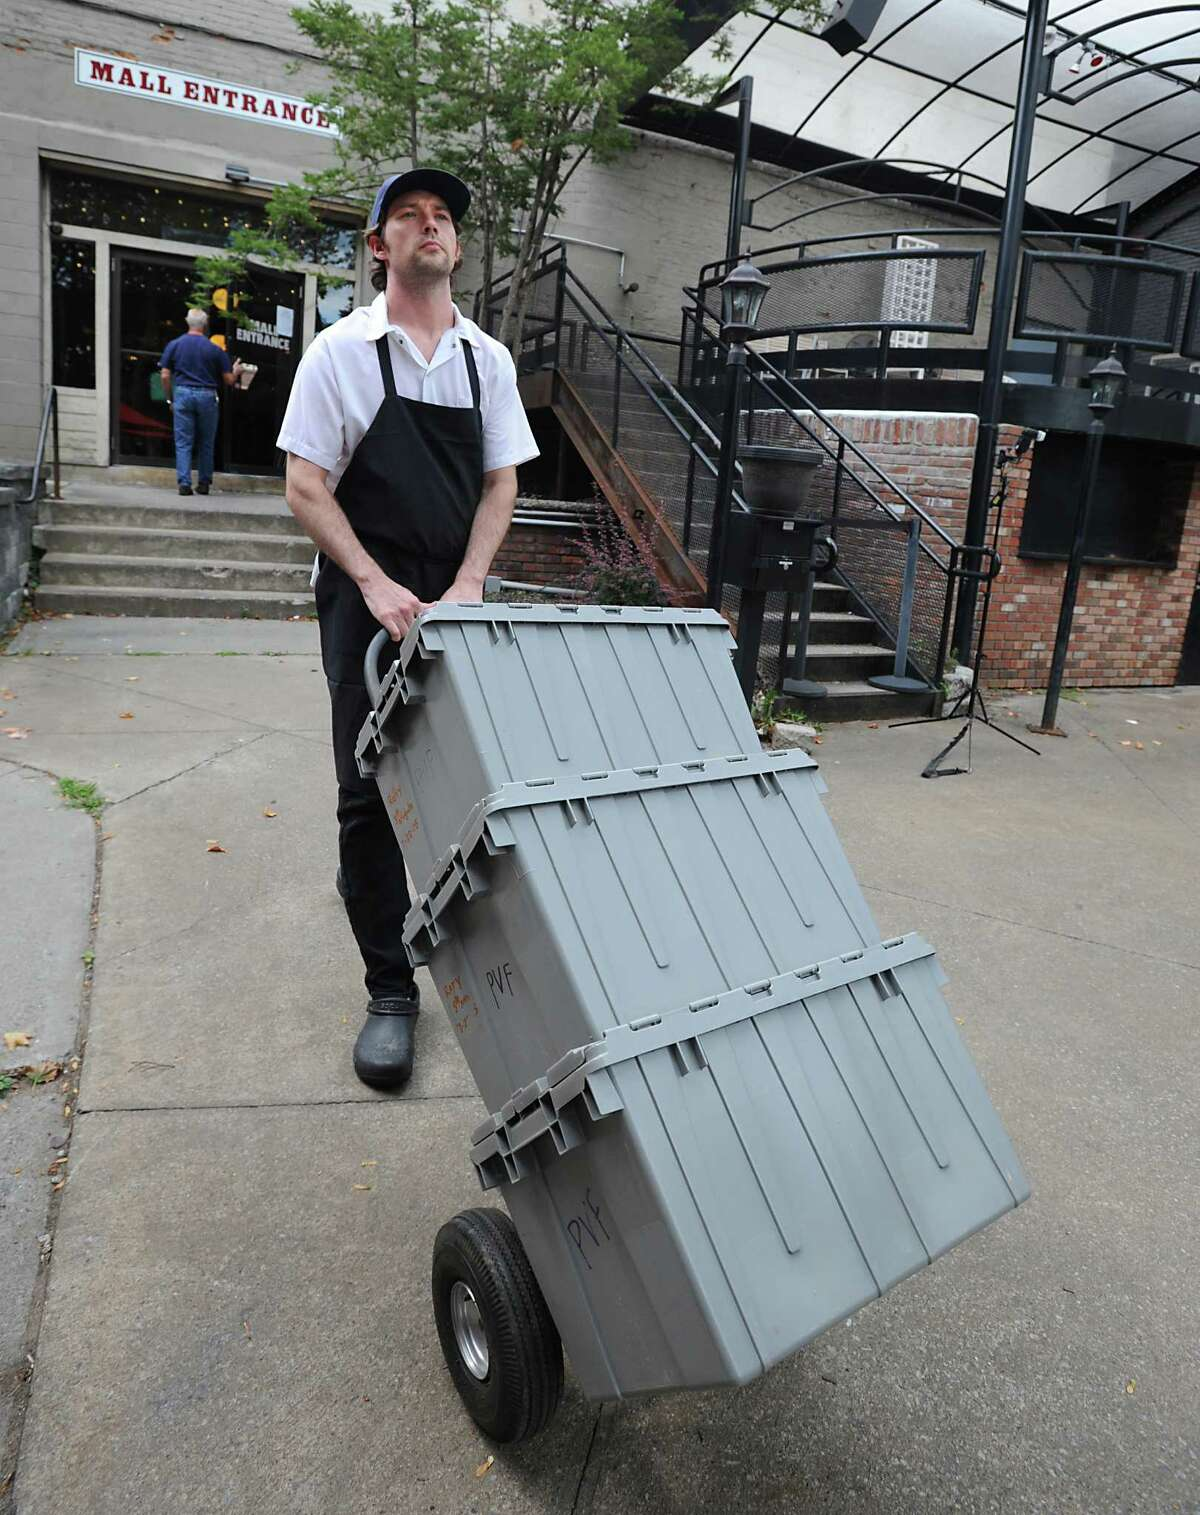 Chef Rory Moran pushes his handcart outside Comfort Kitchen on Thursday, July 23, 2015 in Saratoga Springs, N.Y. He uses the hand cart to procure ingredients for the restaurant. (Lori Van Buren / Times Union)